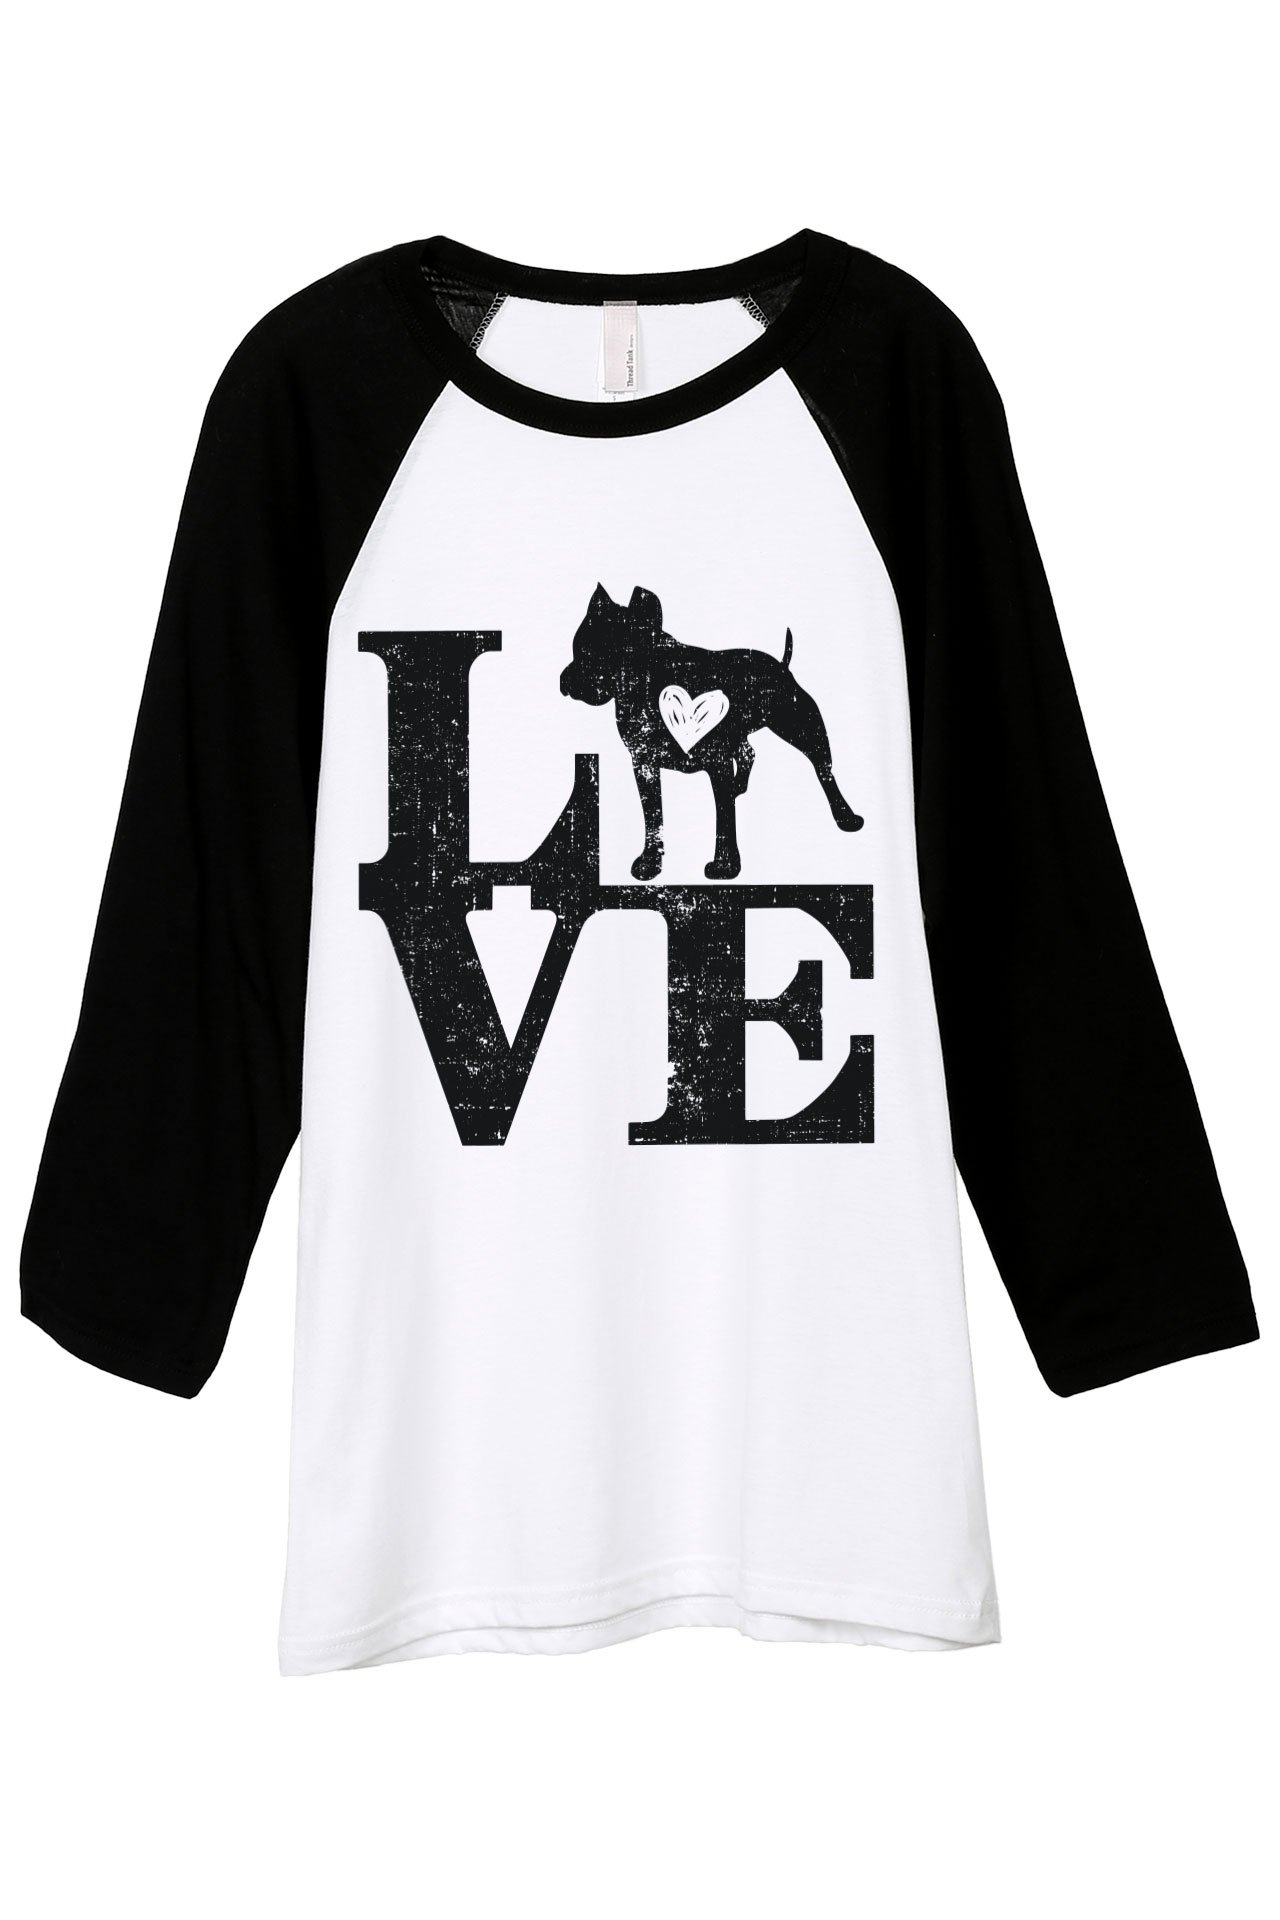 Love Pit Bull Dog Unisex 3/4 Sleeves Baseball Raglan T-Shirt Tee White Black 2X-Large